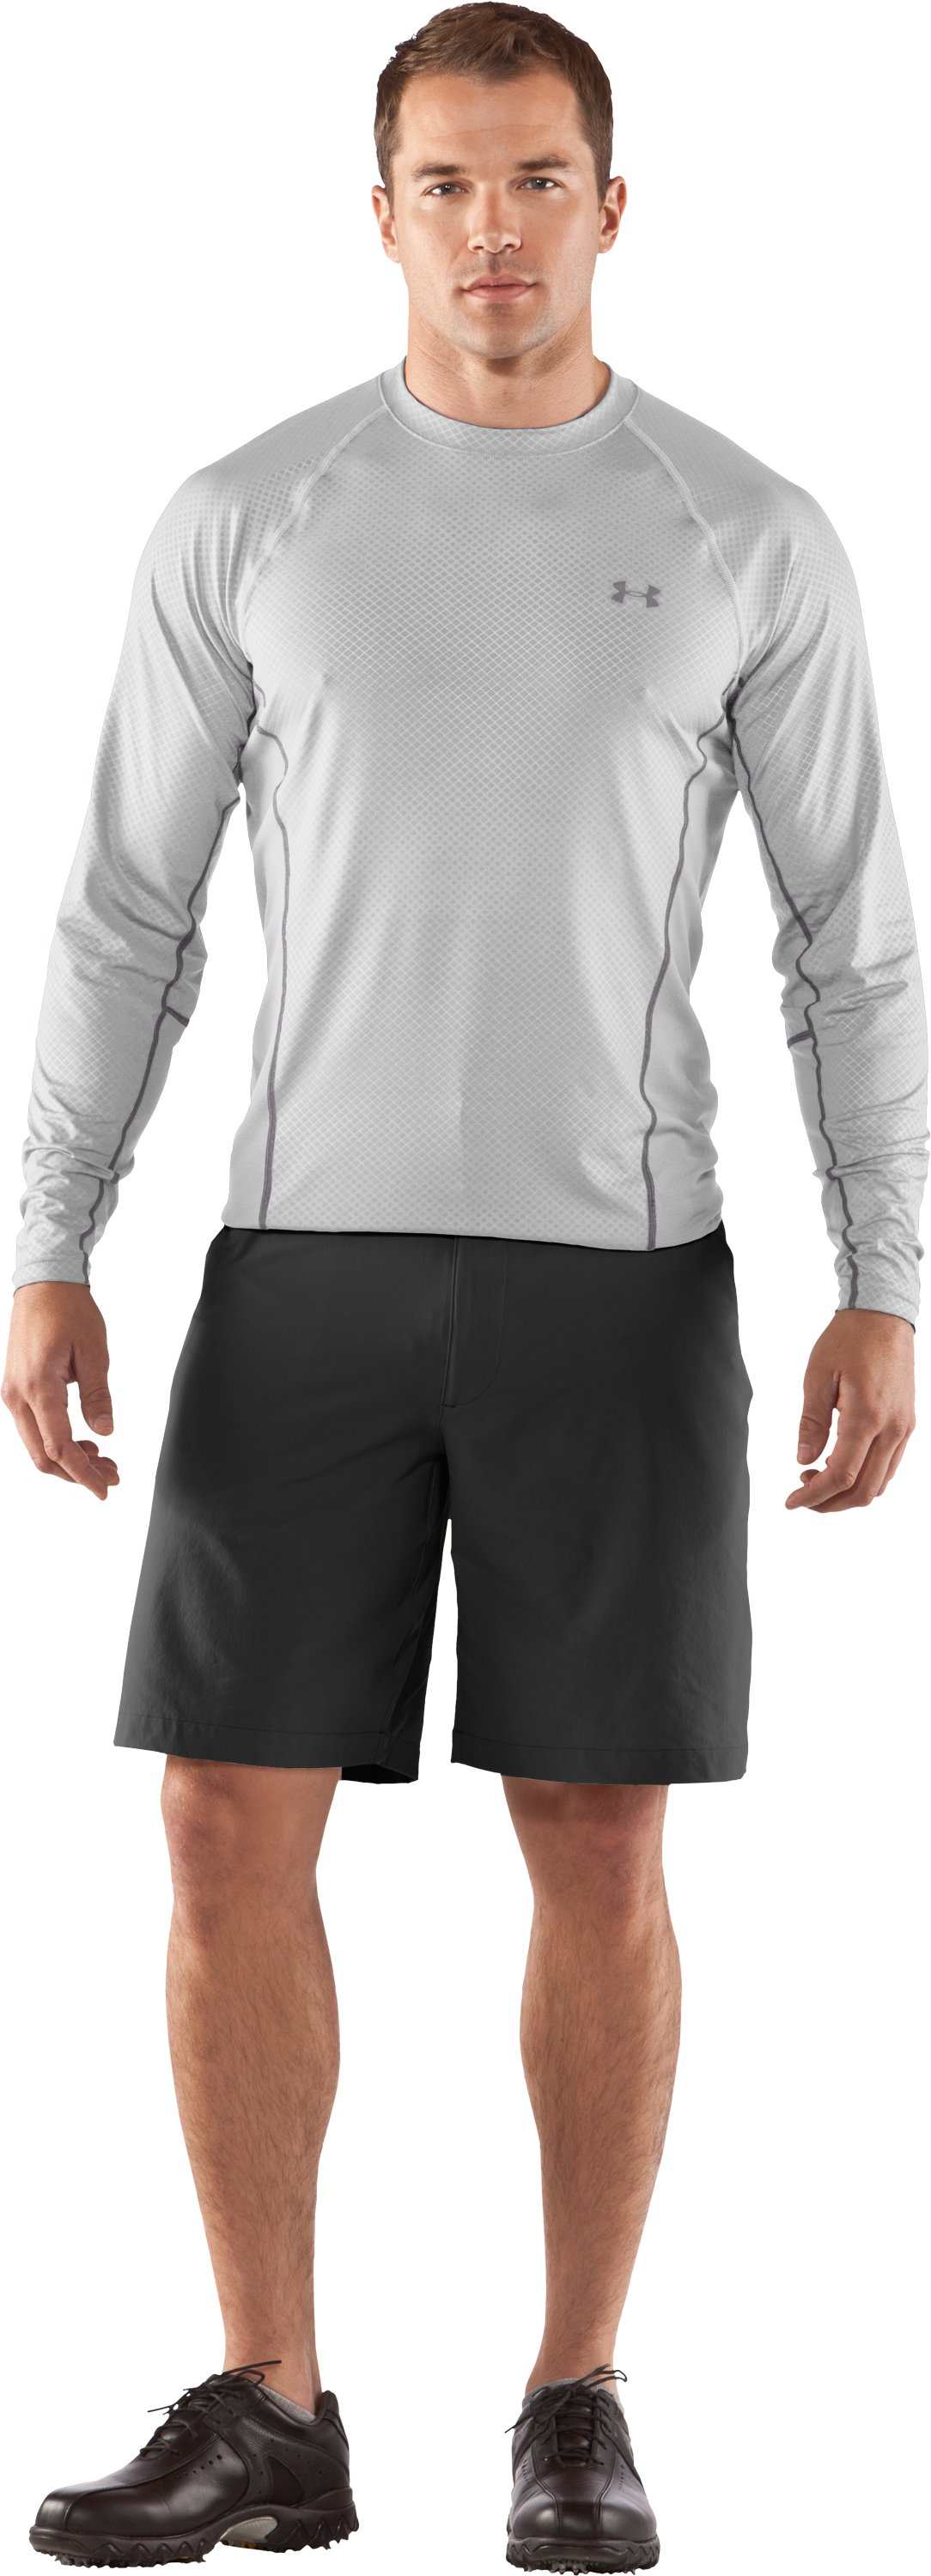 Men's AllSeasonGear® Golf Long Sleeve Shirt, White